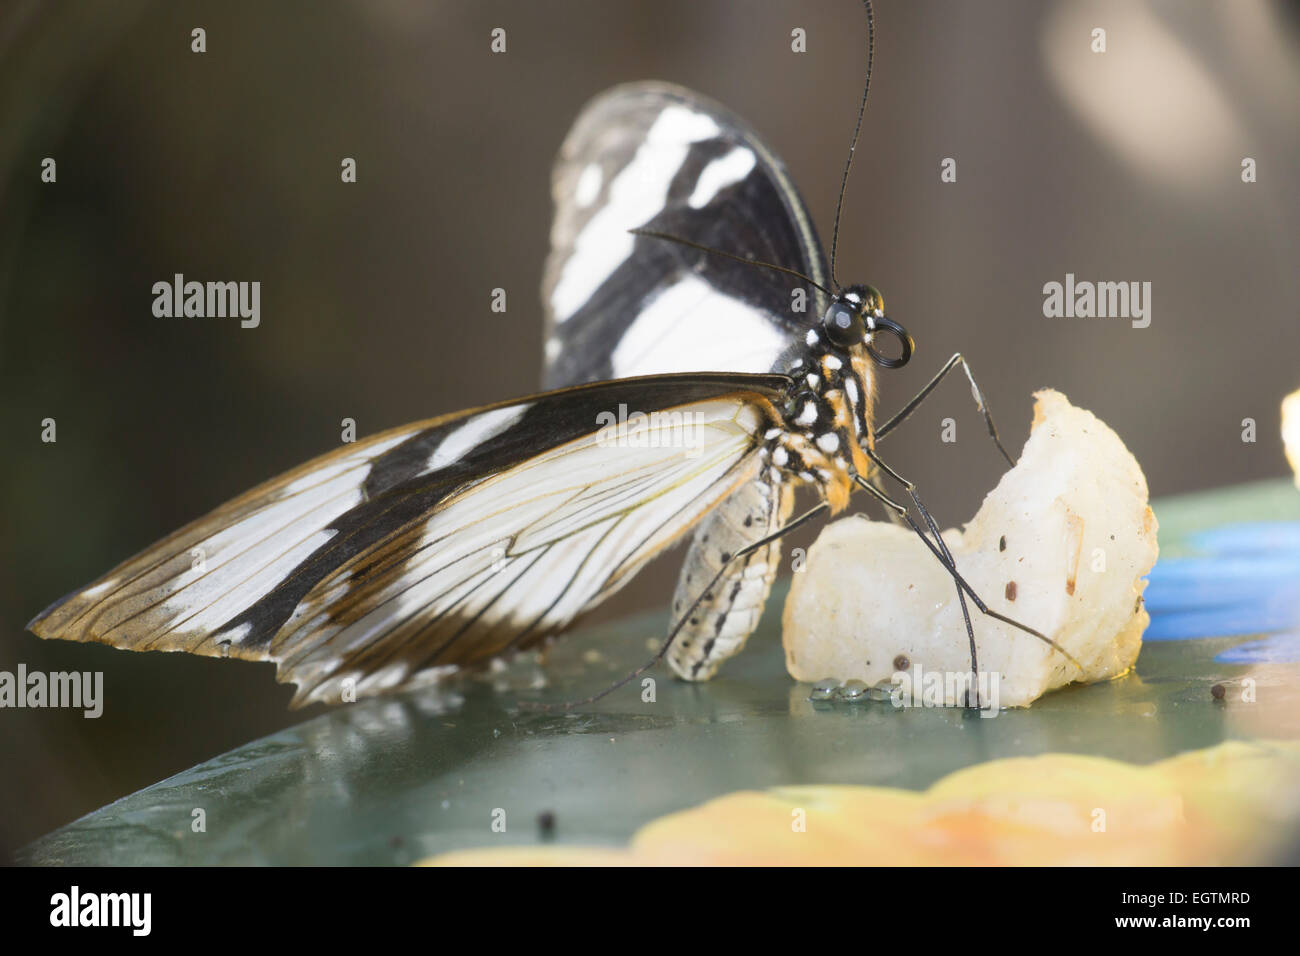 Tropical butteryfly feeding - Stock Image